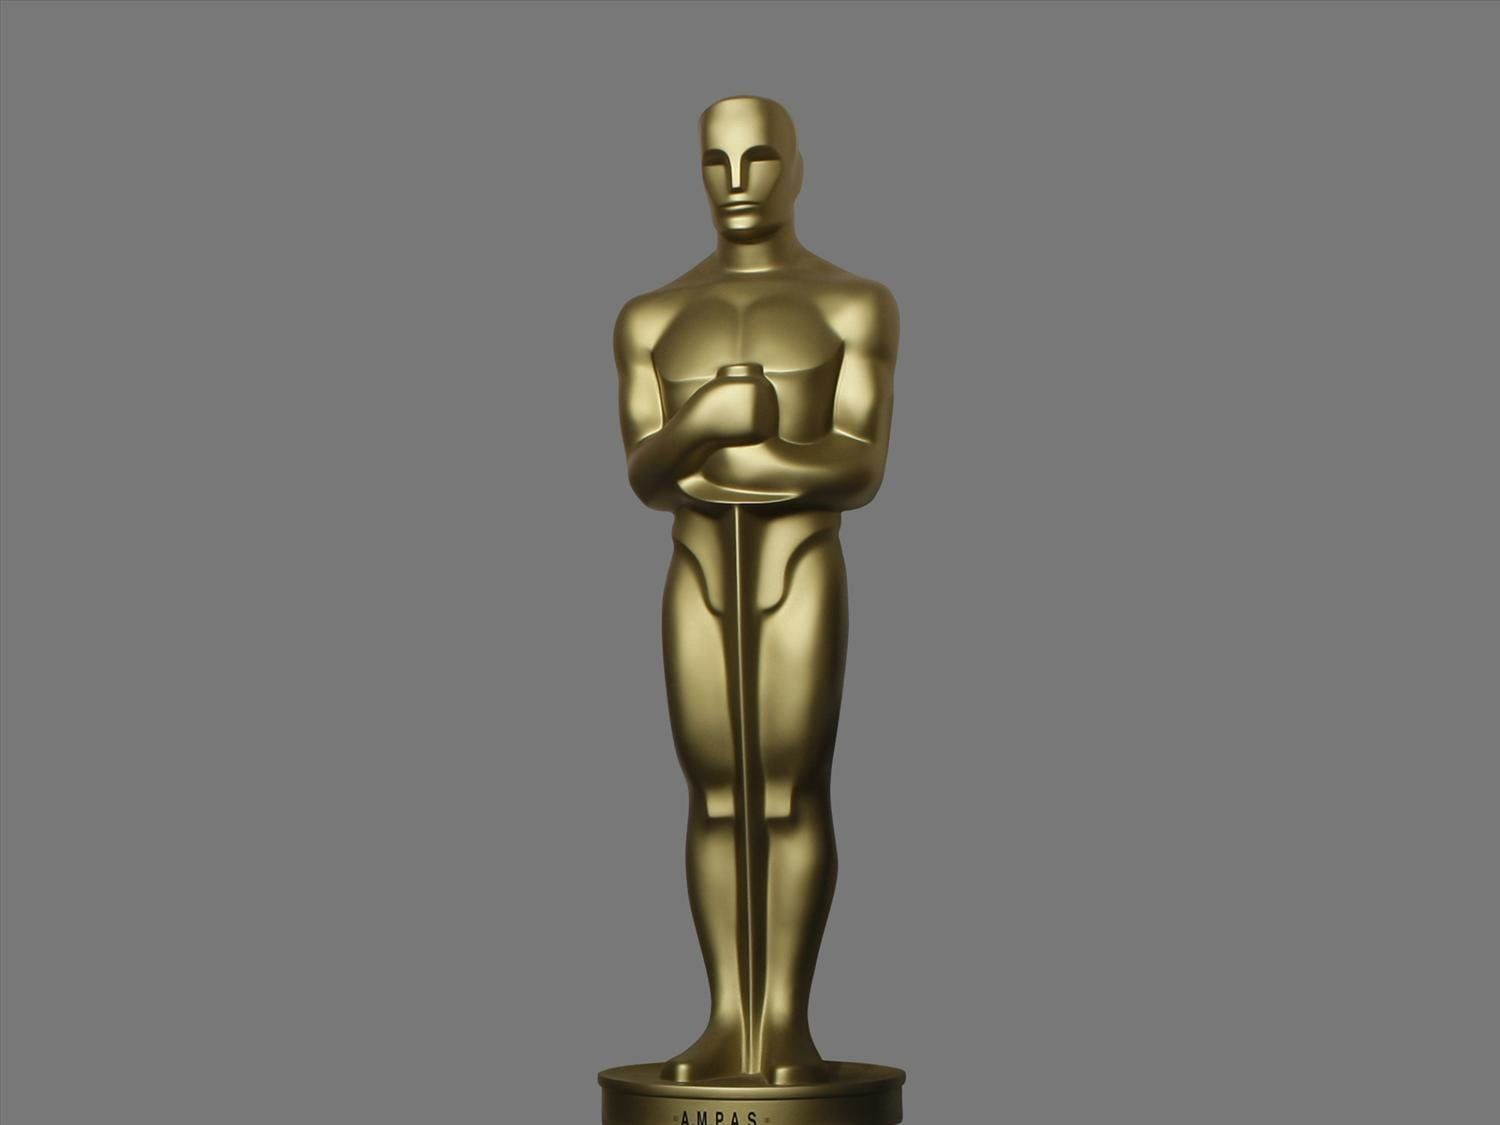 Oscar statue, graphic element on gray